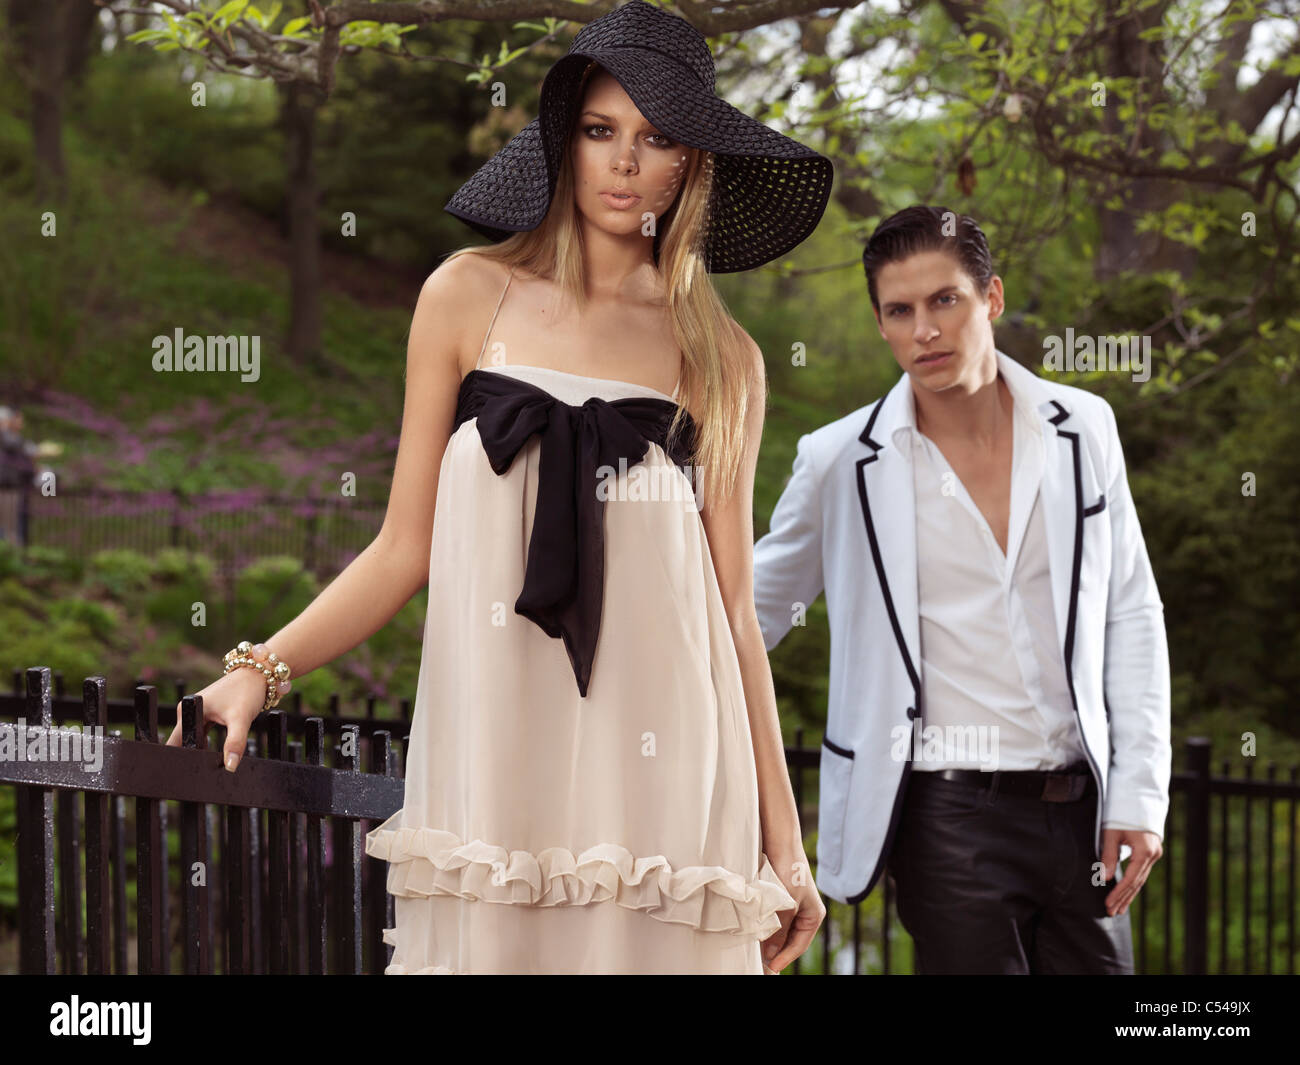 Young couple standing at a fence in a park. Springtime scenic. - Stock Image